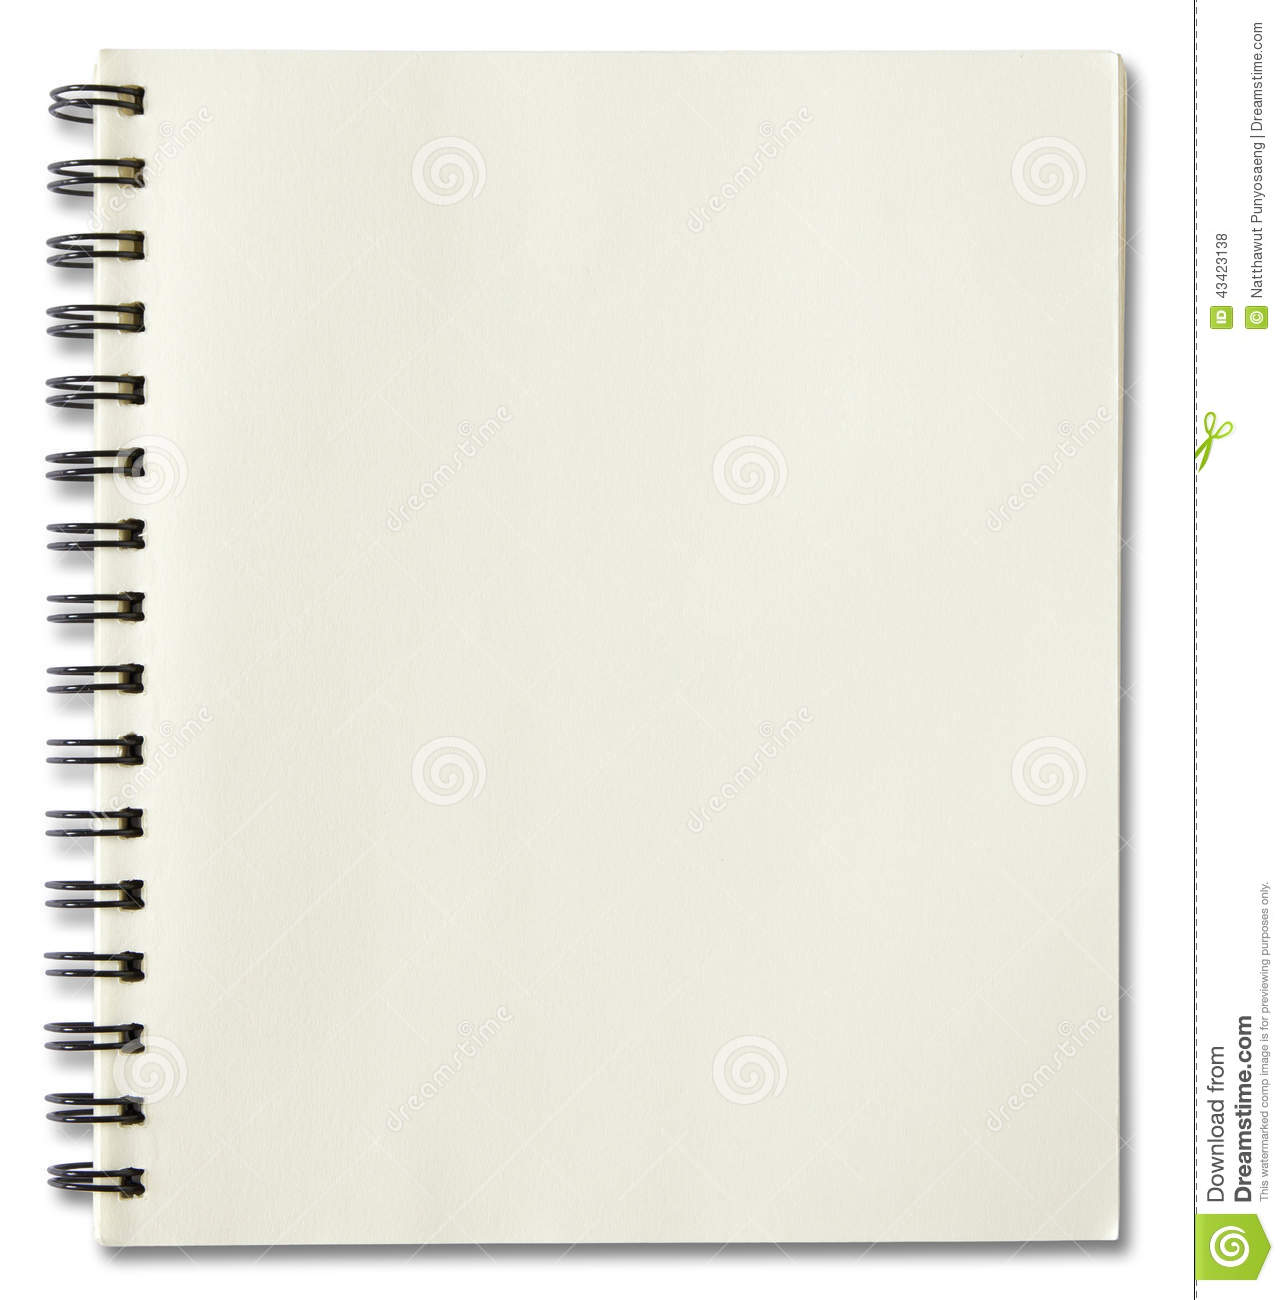 Blank Spiral Notebook Stock Photo Image 43423138